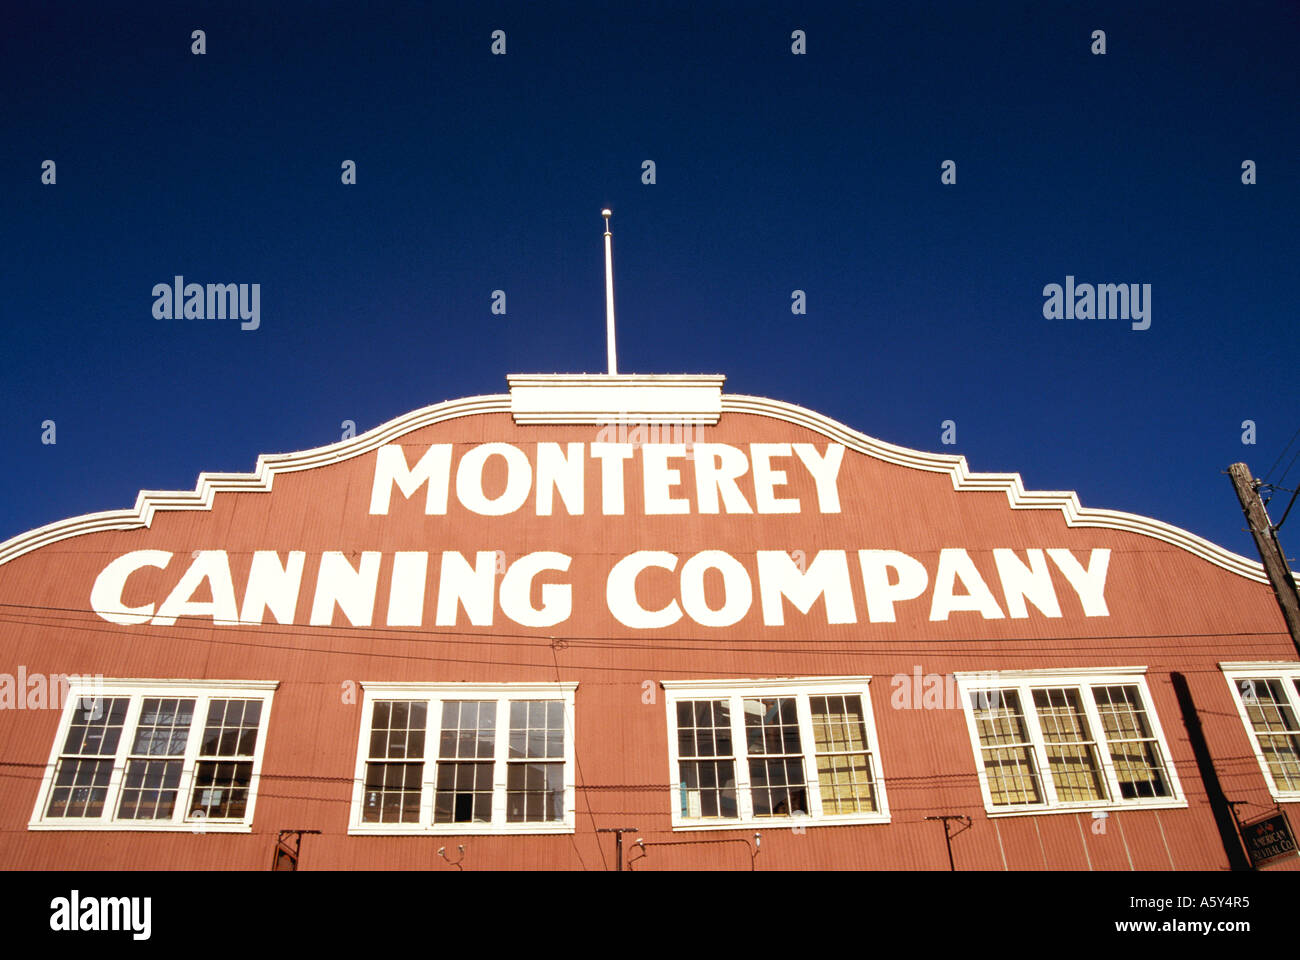 California Monterey Cannery Row Monterey Canning Company Building - Stock Image